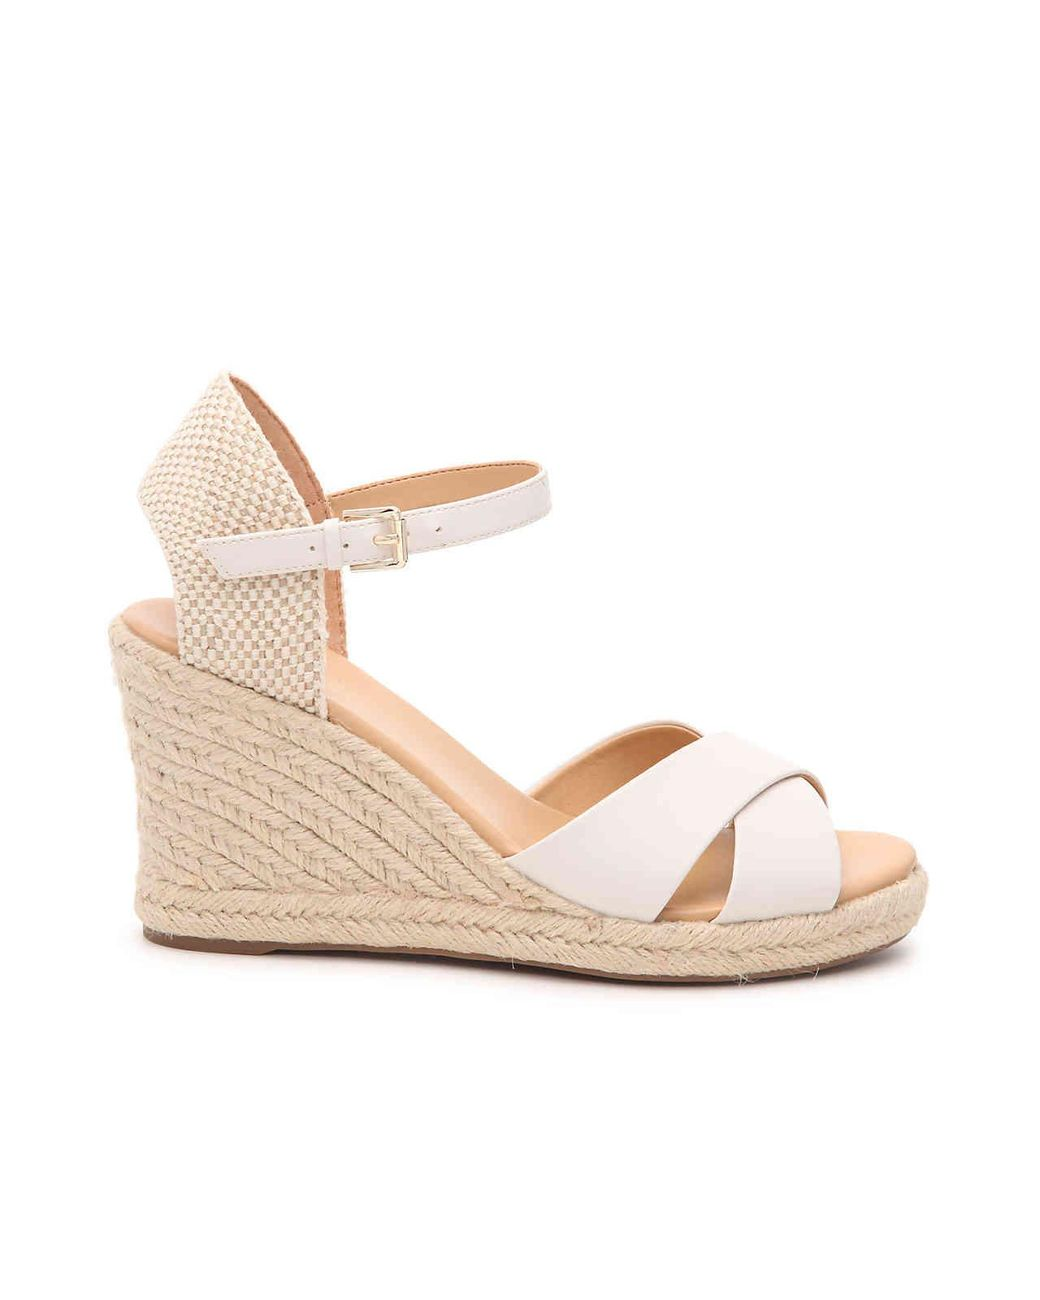 8c5e21c5e Nine West Joydyn 3 Espadrille Wedge Sandal in White - Lyst